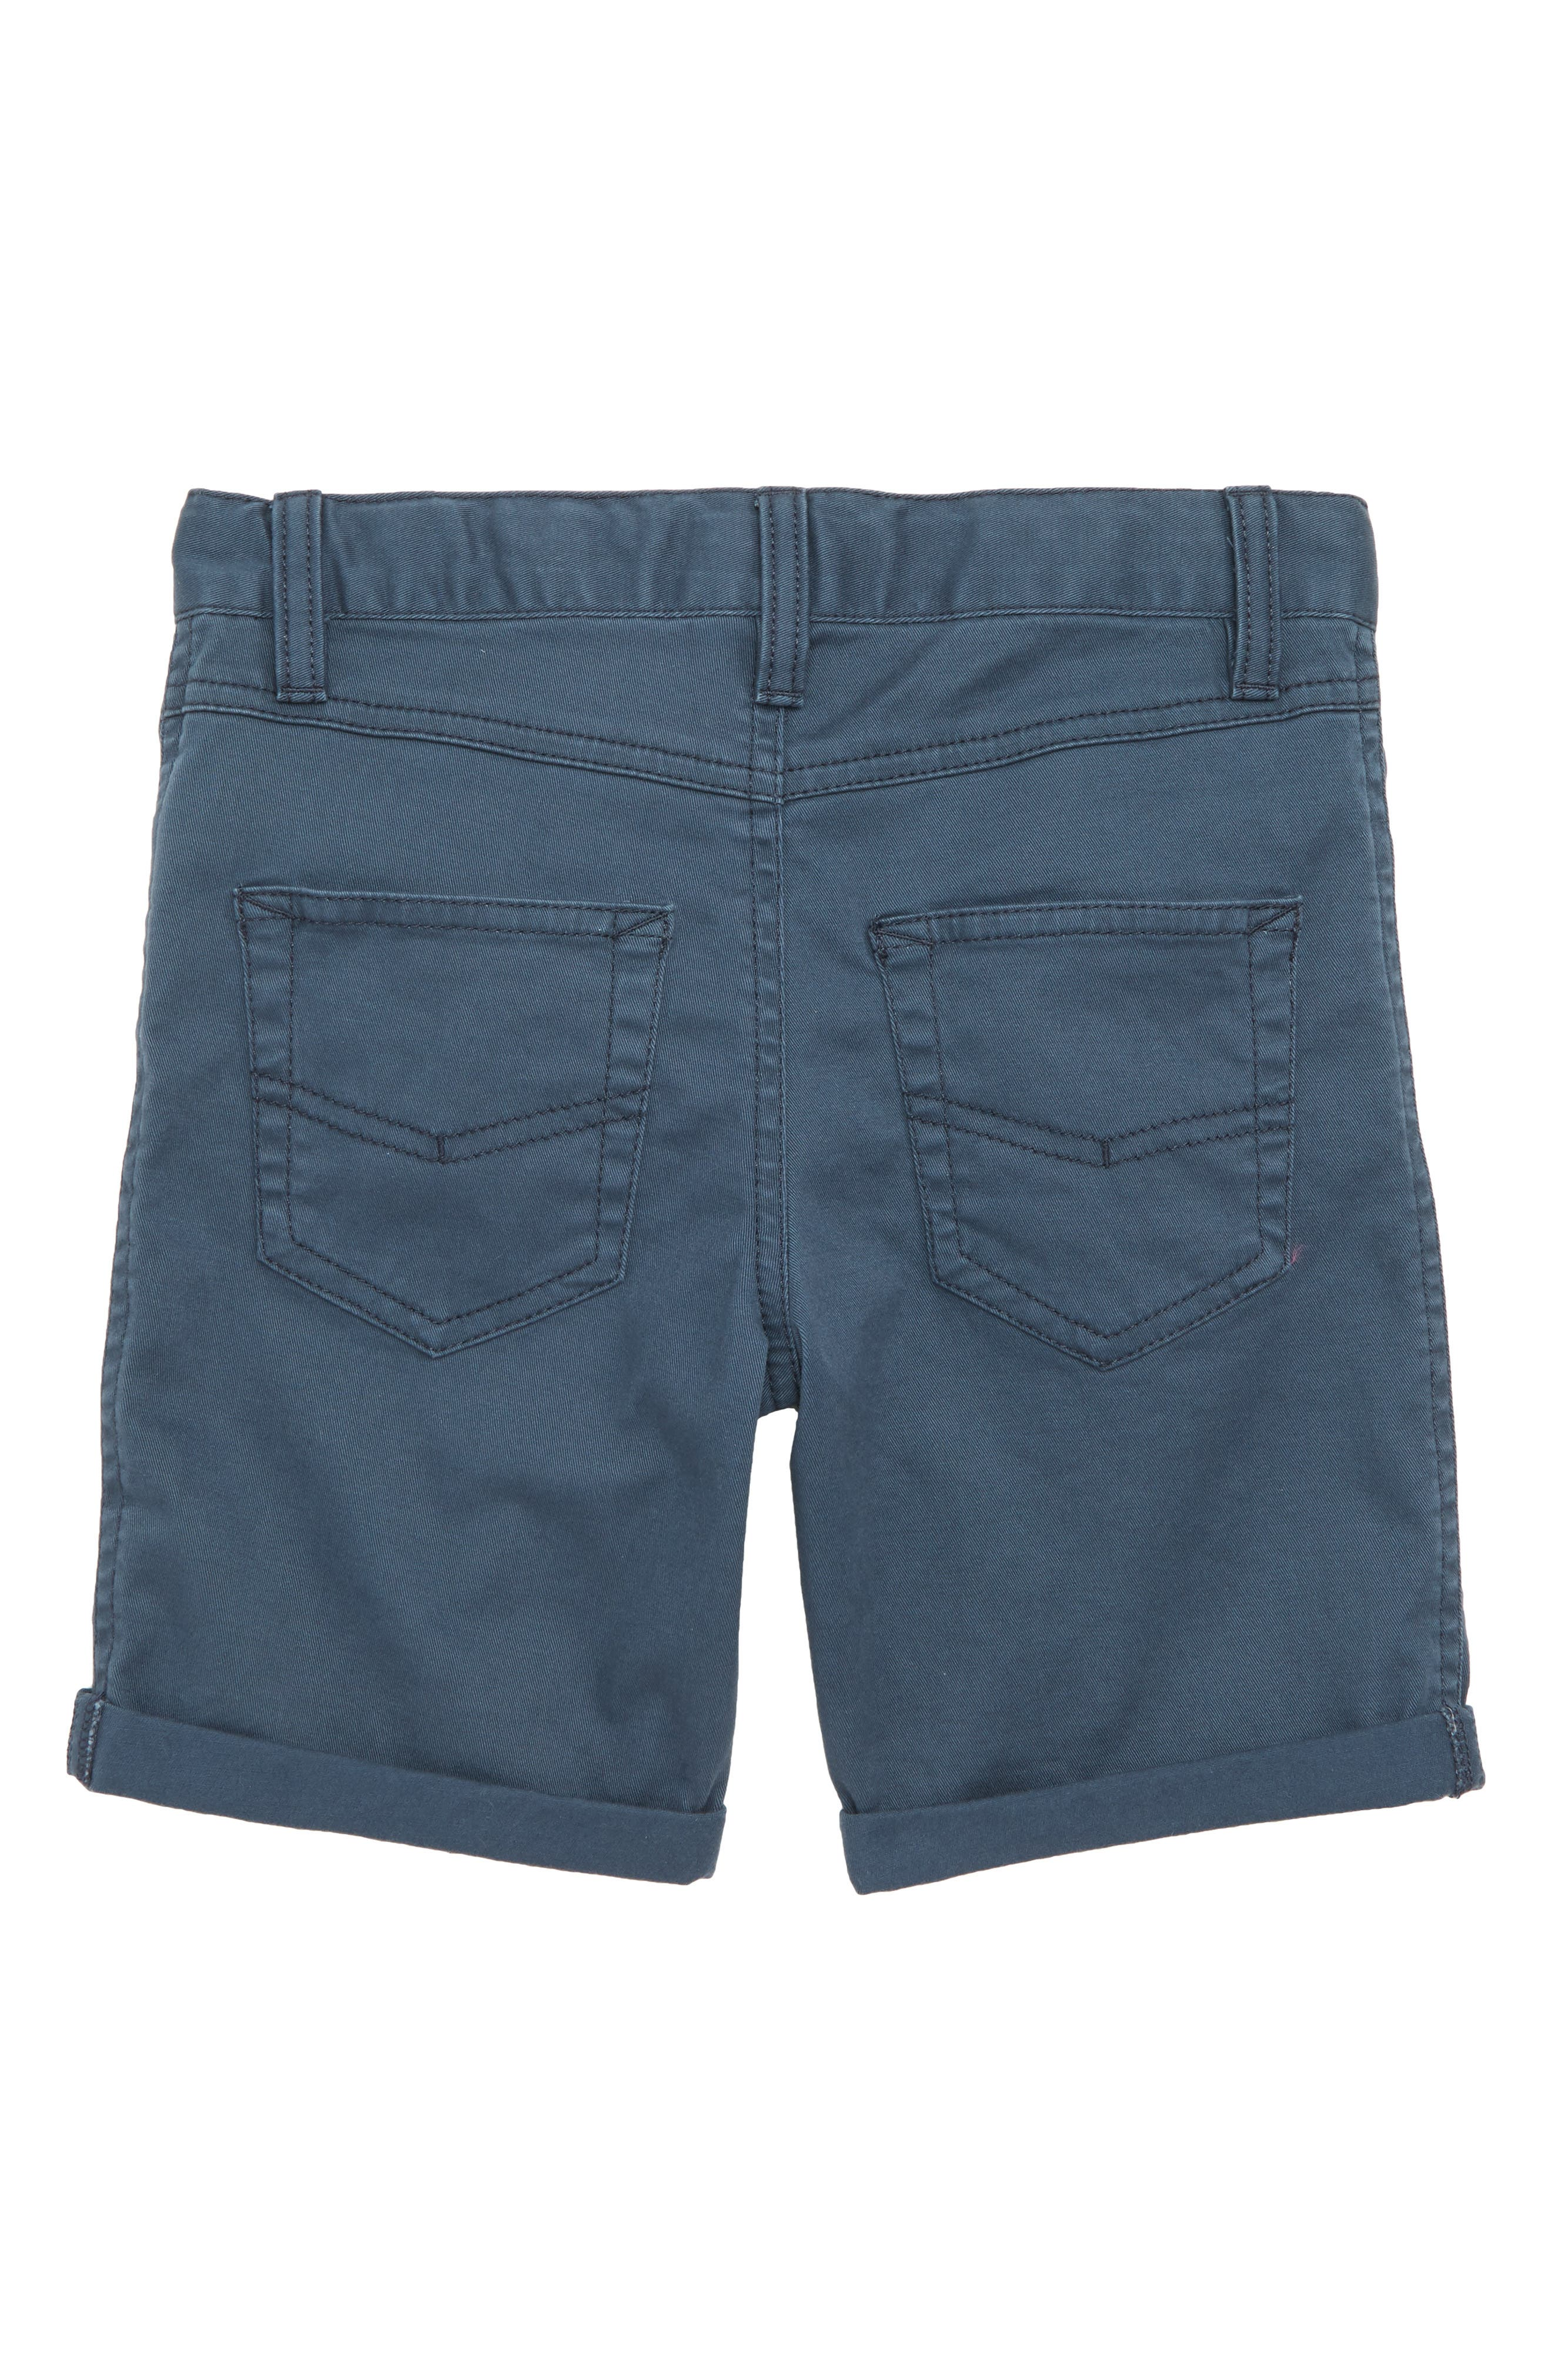 Stretch Twill Shorts,                             Alternate thumbnail 2, color,                             Navy Midnight